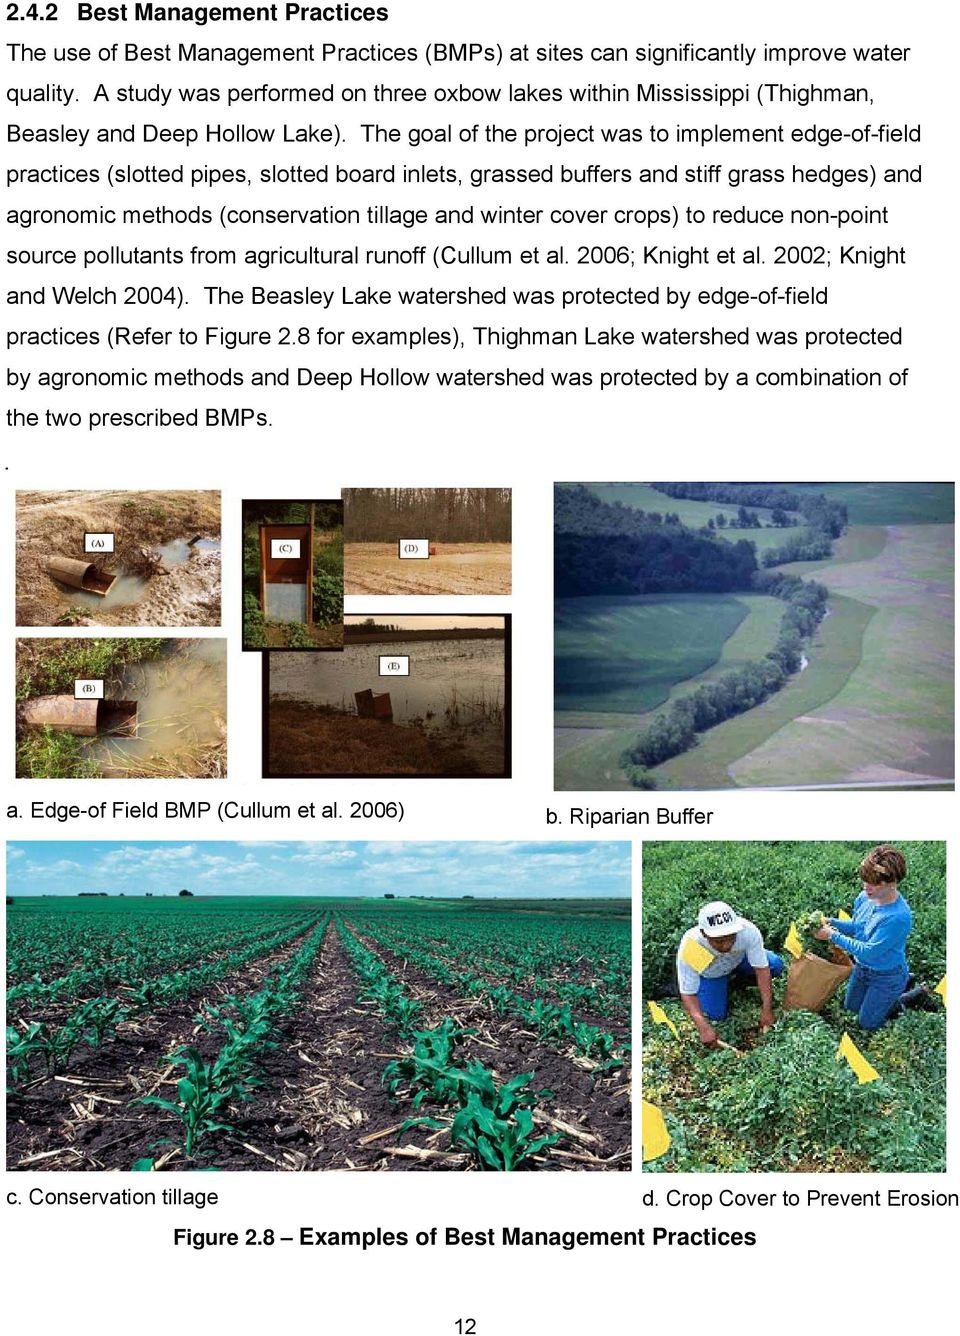 The goal of the project was to implement edge-of-field practices (slotted pipes, slotted board inlets, grassed buffers and stiff grass hedges) and agronomic methods (conservation tillage and winter